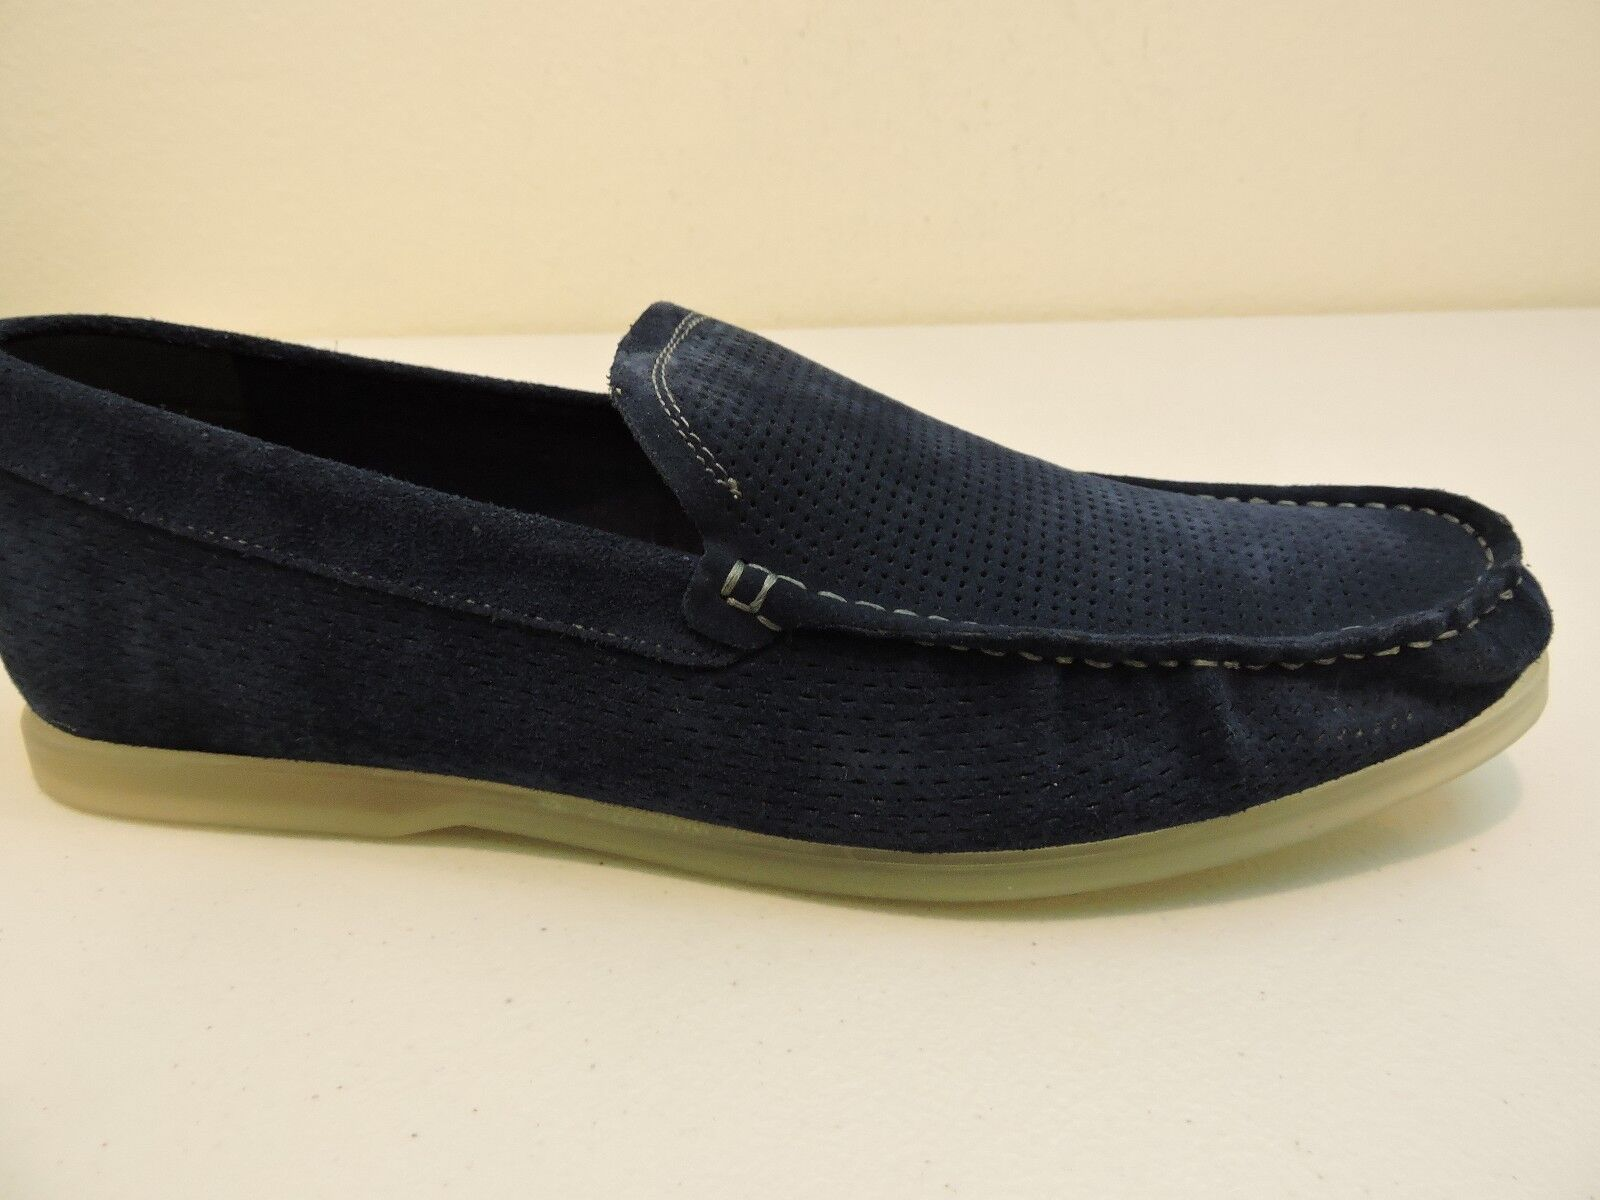 Kenneth Cole Reaction Suede bluee Marine Loafers W Urethane Sole Size 9.5 Medium